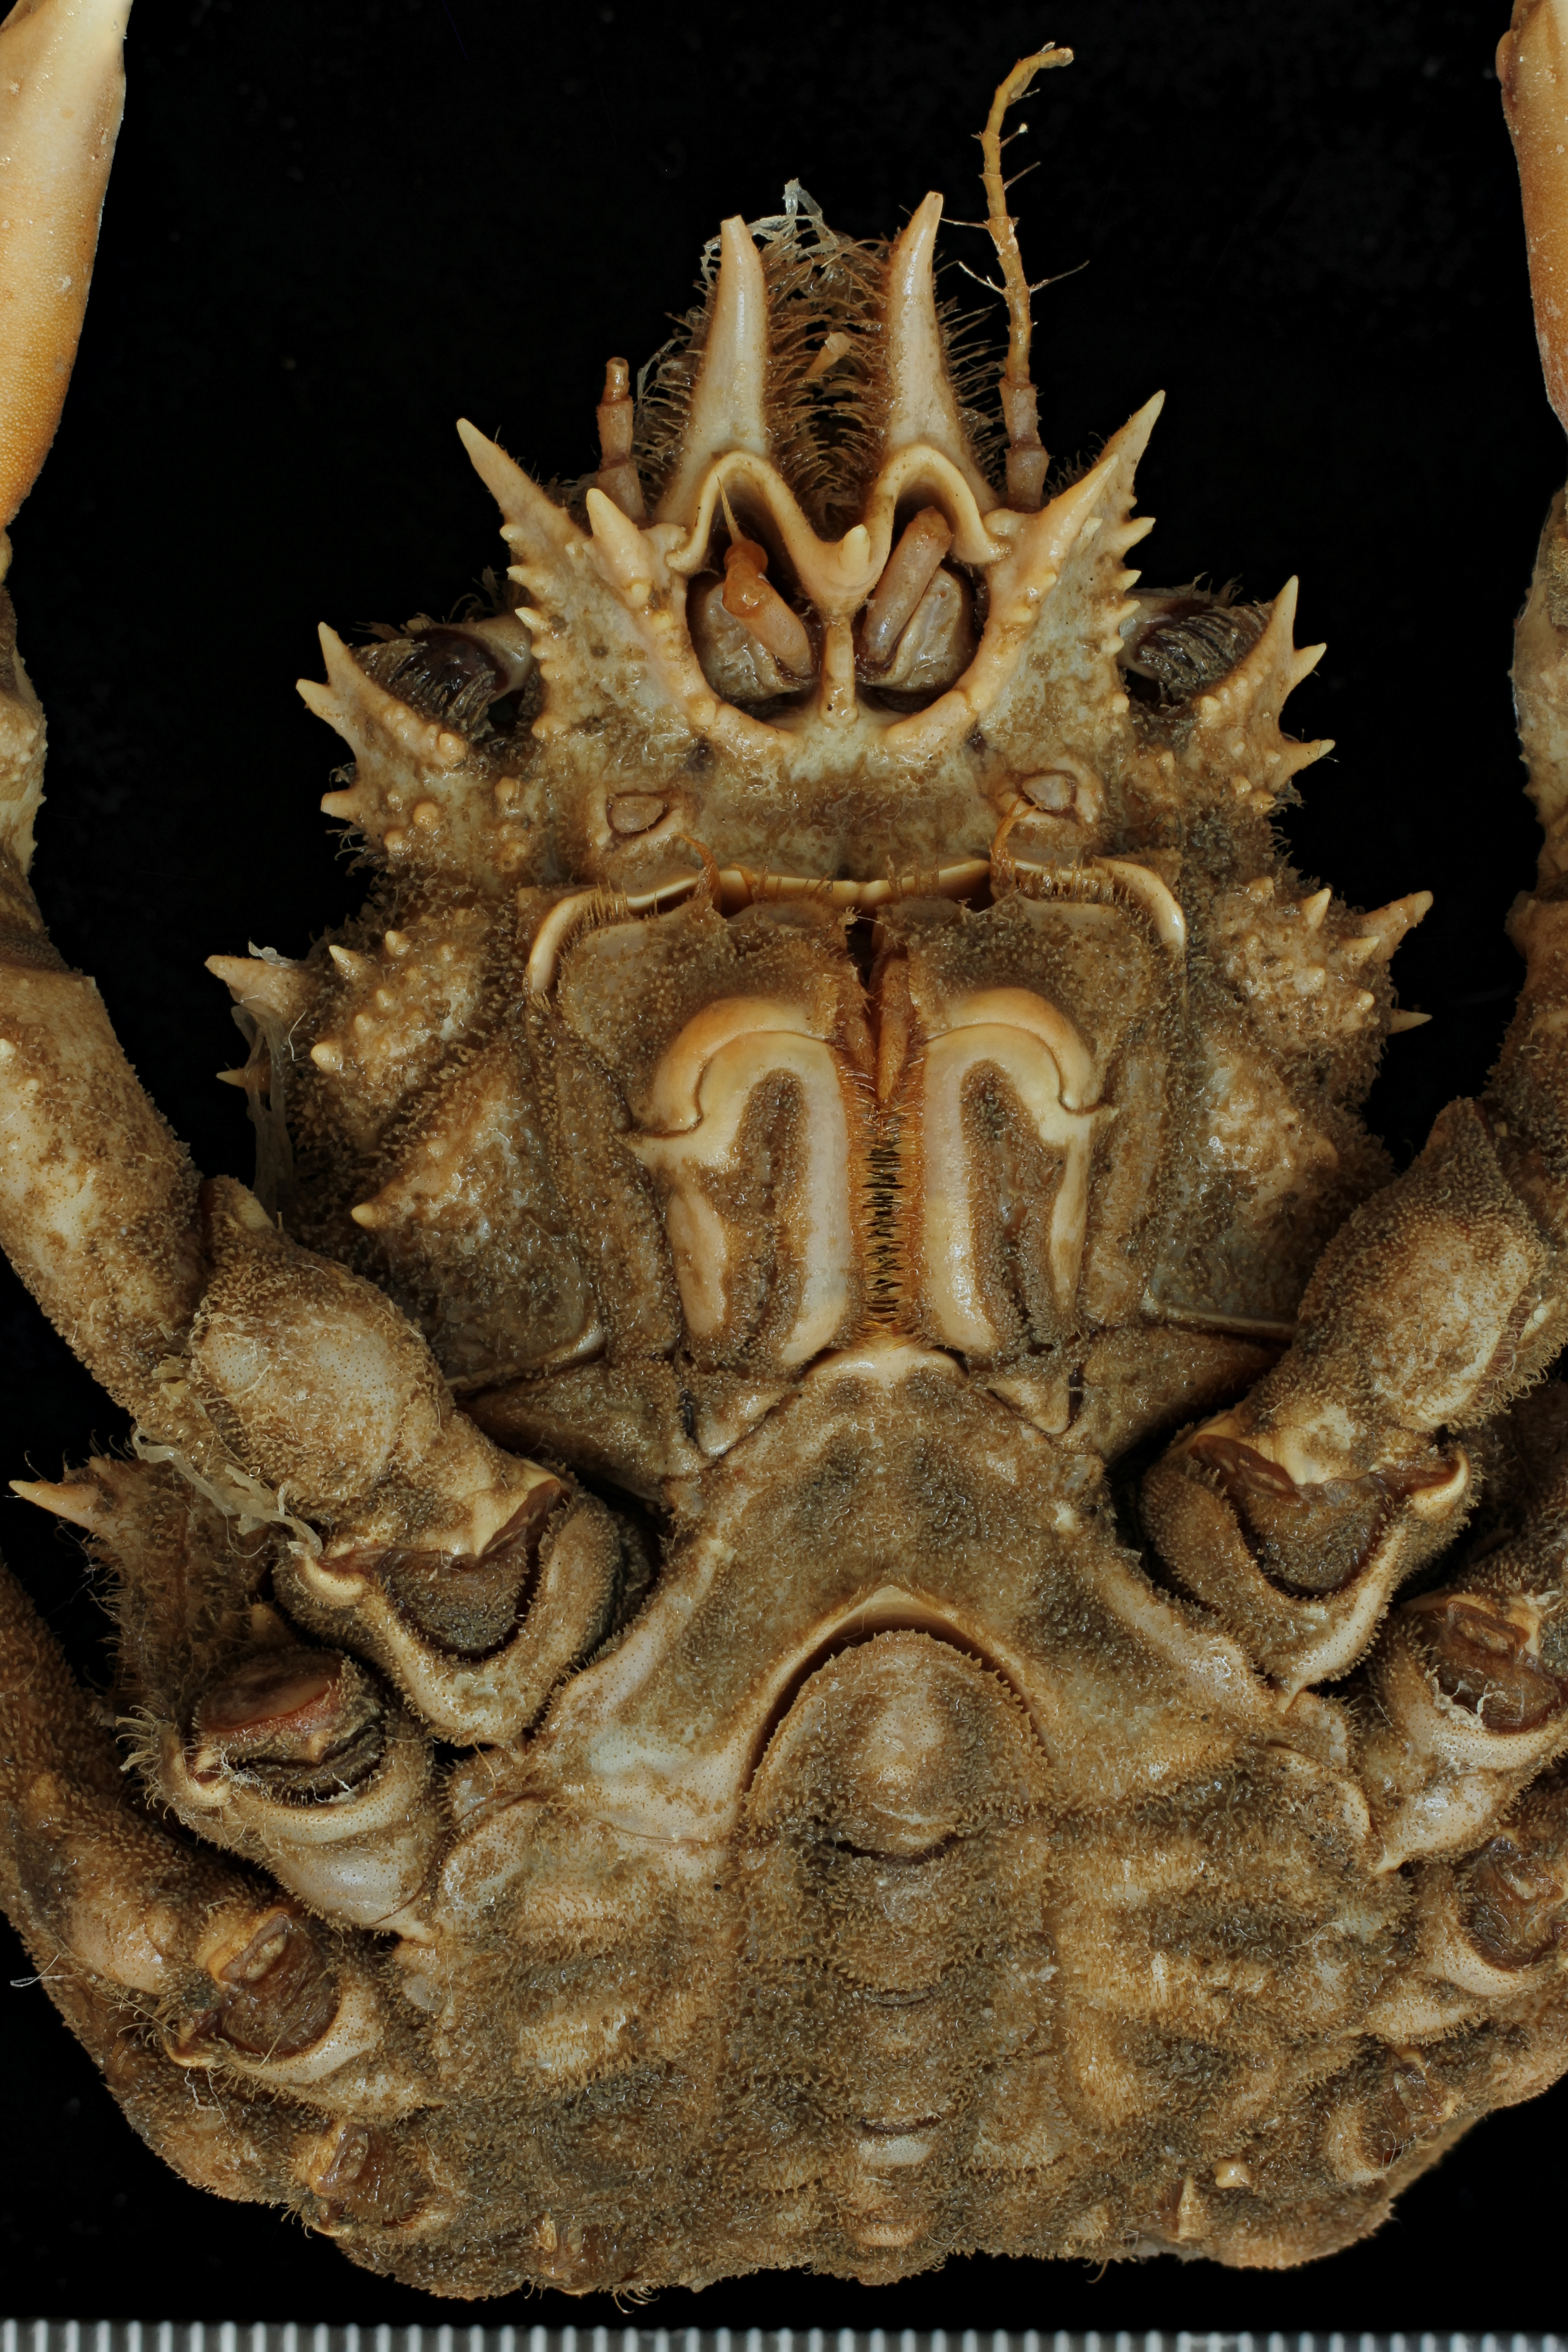 Leptomithrax gaimardii (H. Milne Edwards, 1834) - syntype of Leptomithrax spinulosus Haswell, 1880 - ventral view.